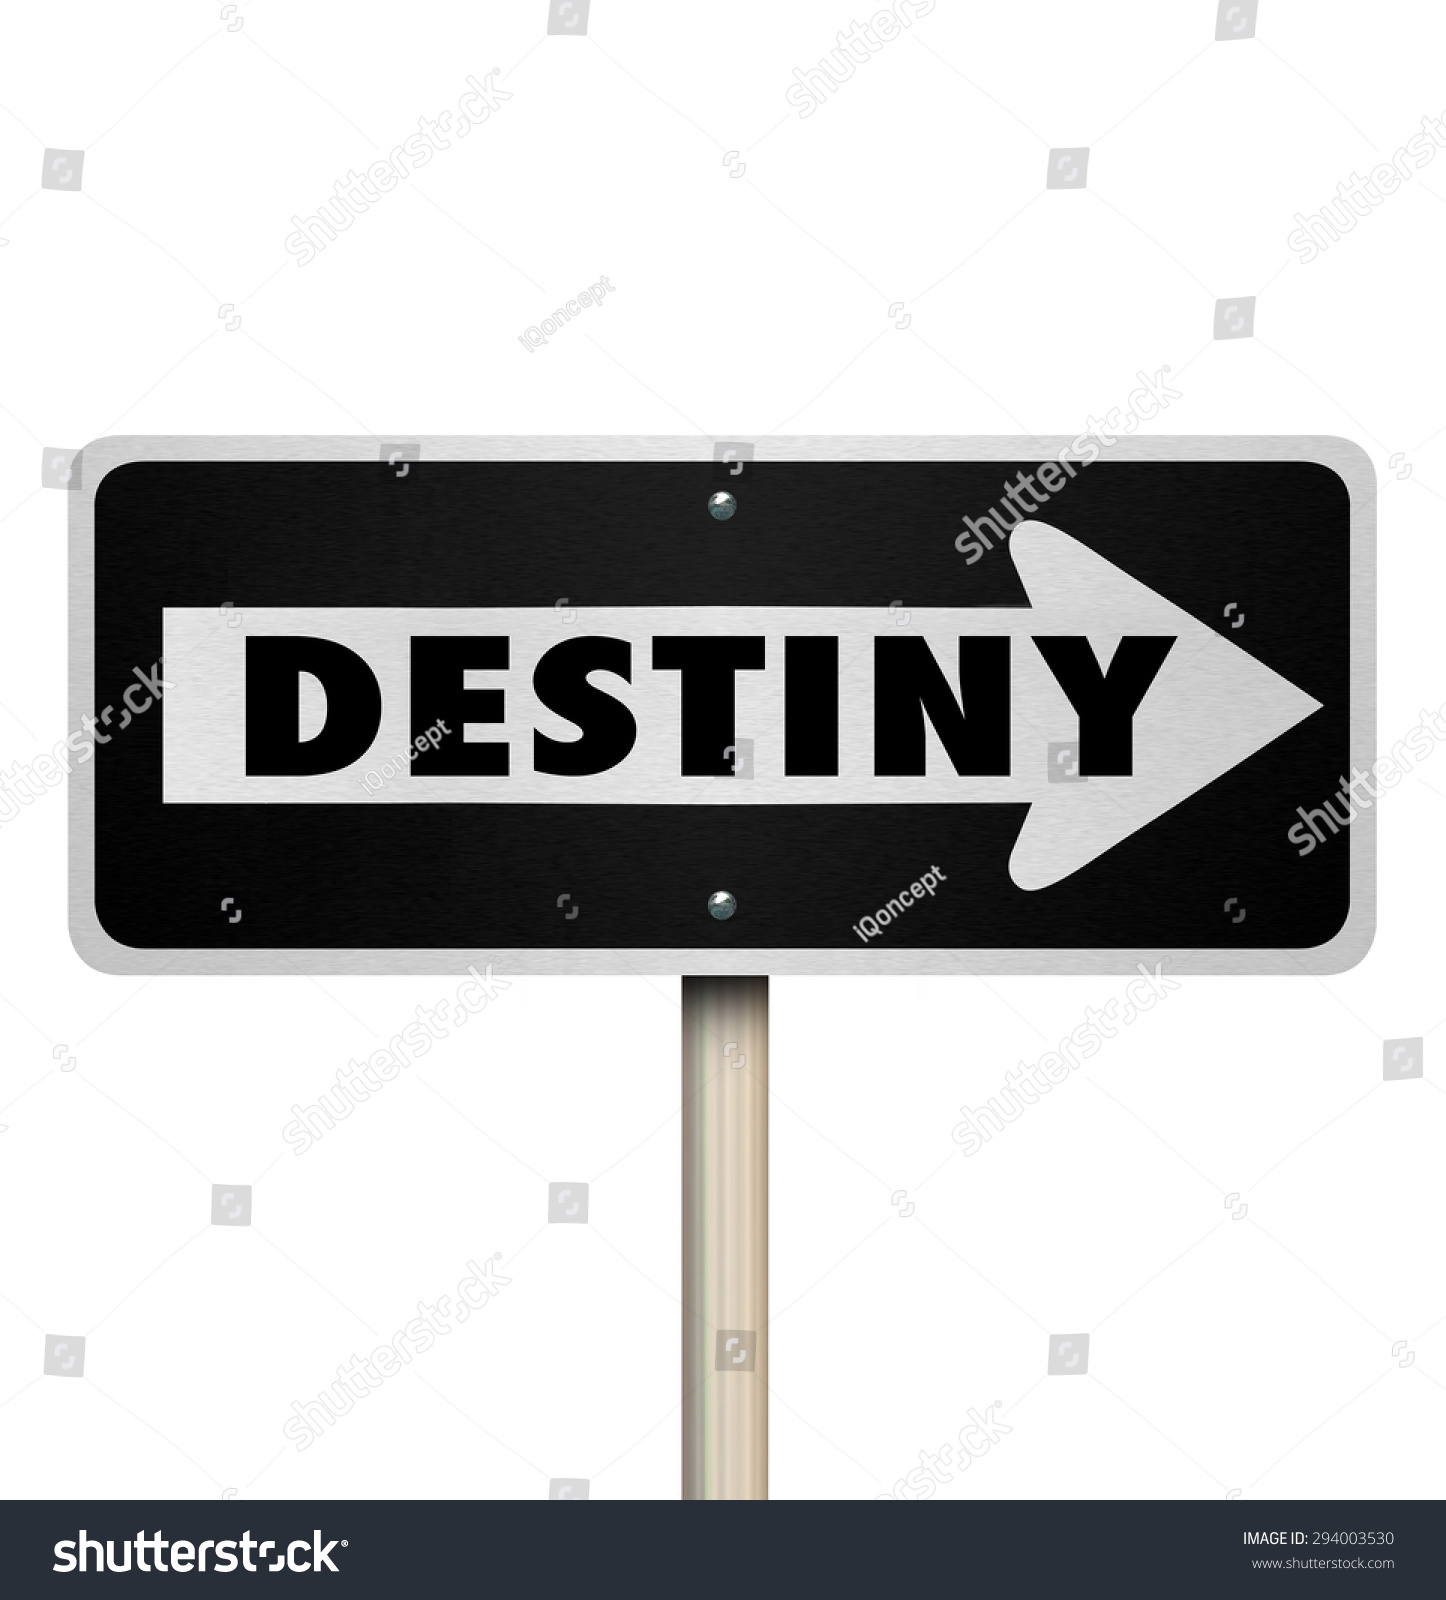 destiny how to get the winged word